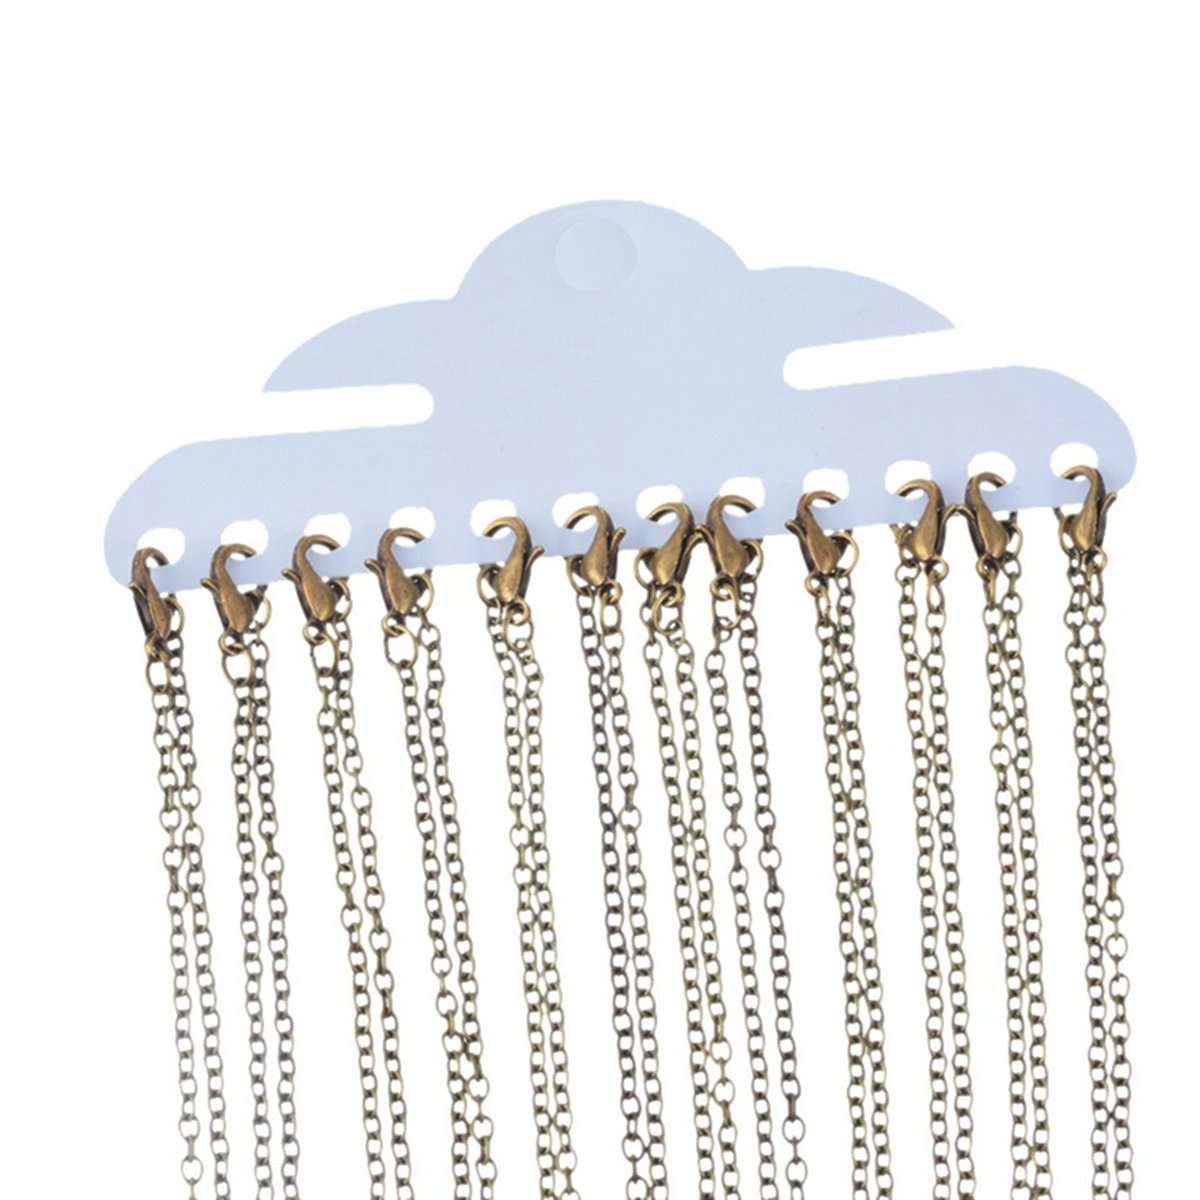 HOUSWEETY 12 Silver Plated Link Chain Necklaces 2x3mm 16